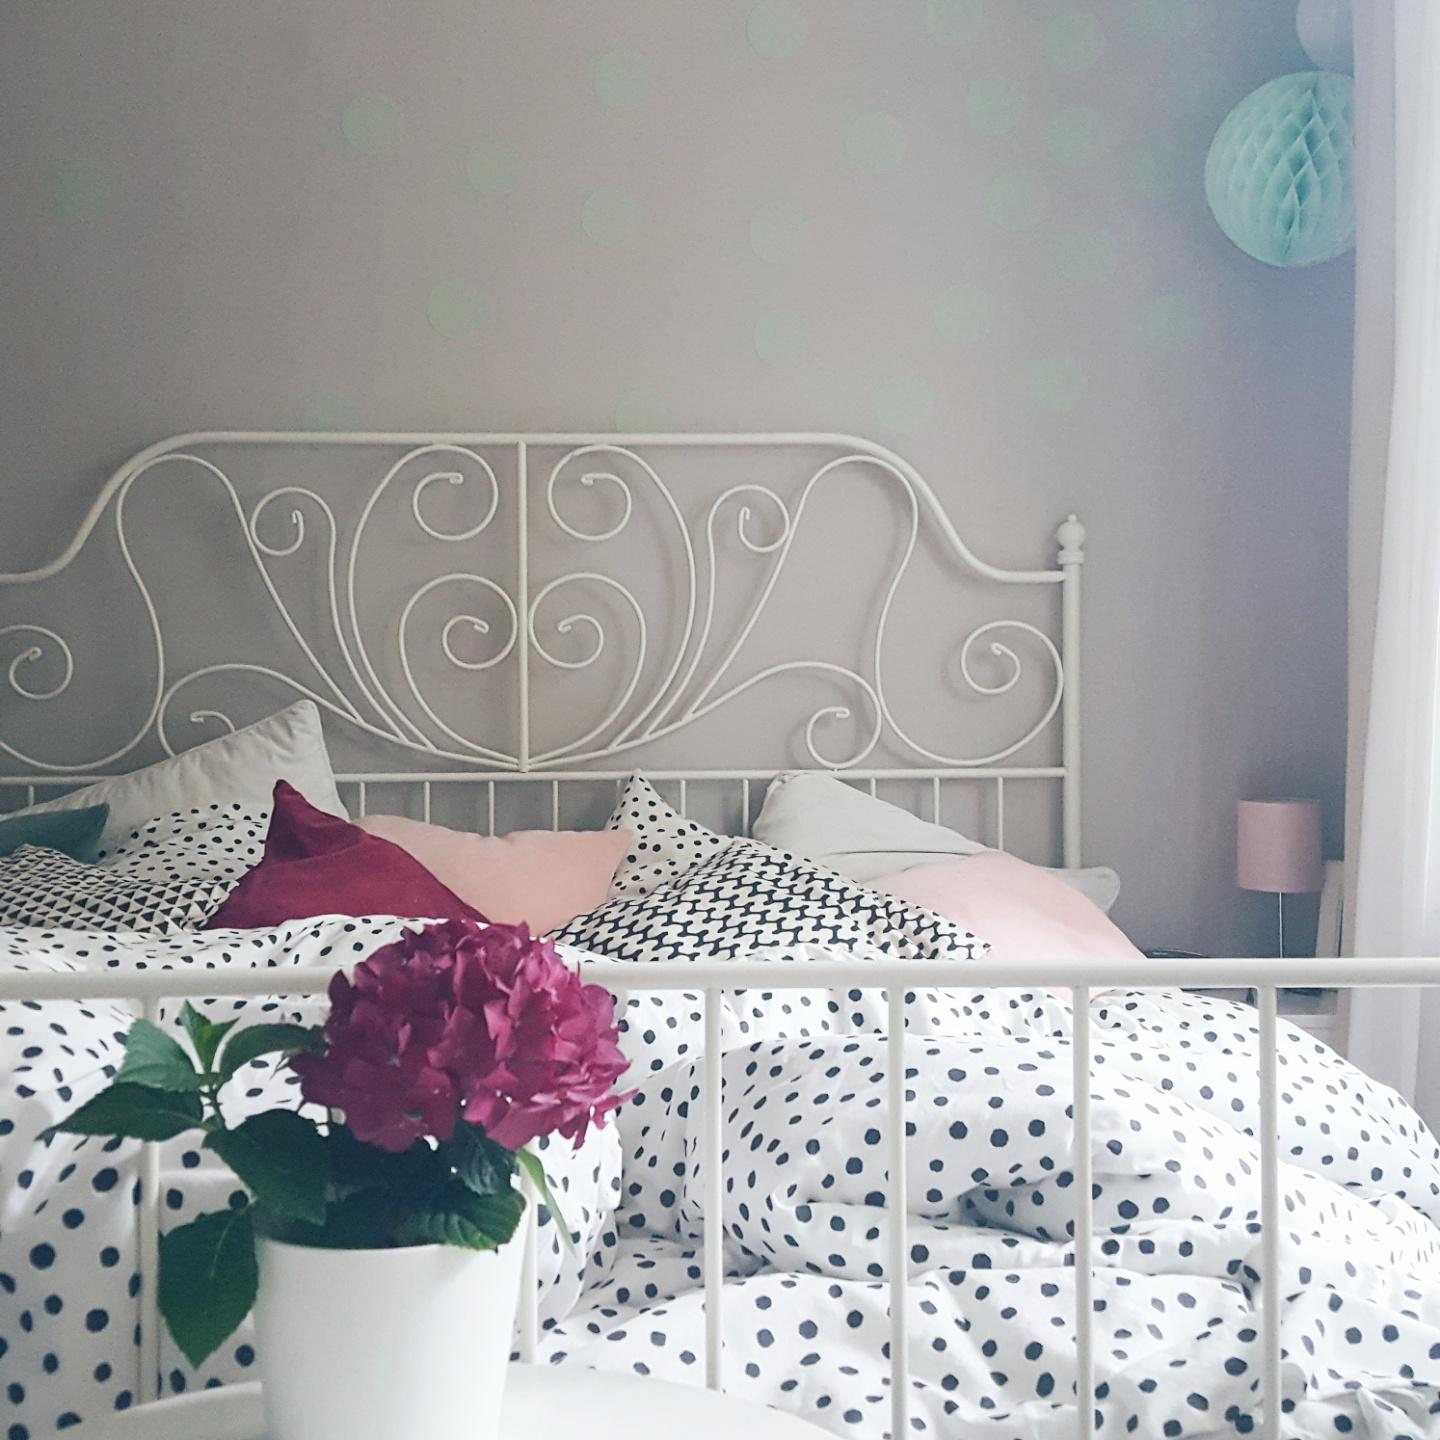 #bedroom #schlafzimmer #living #interior #mint #pastell #pastellover #mustermix